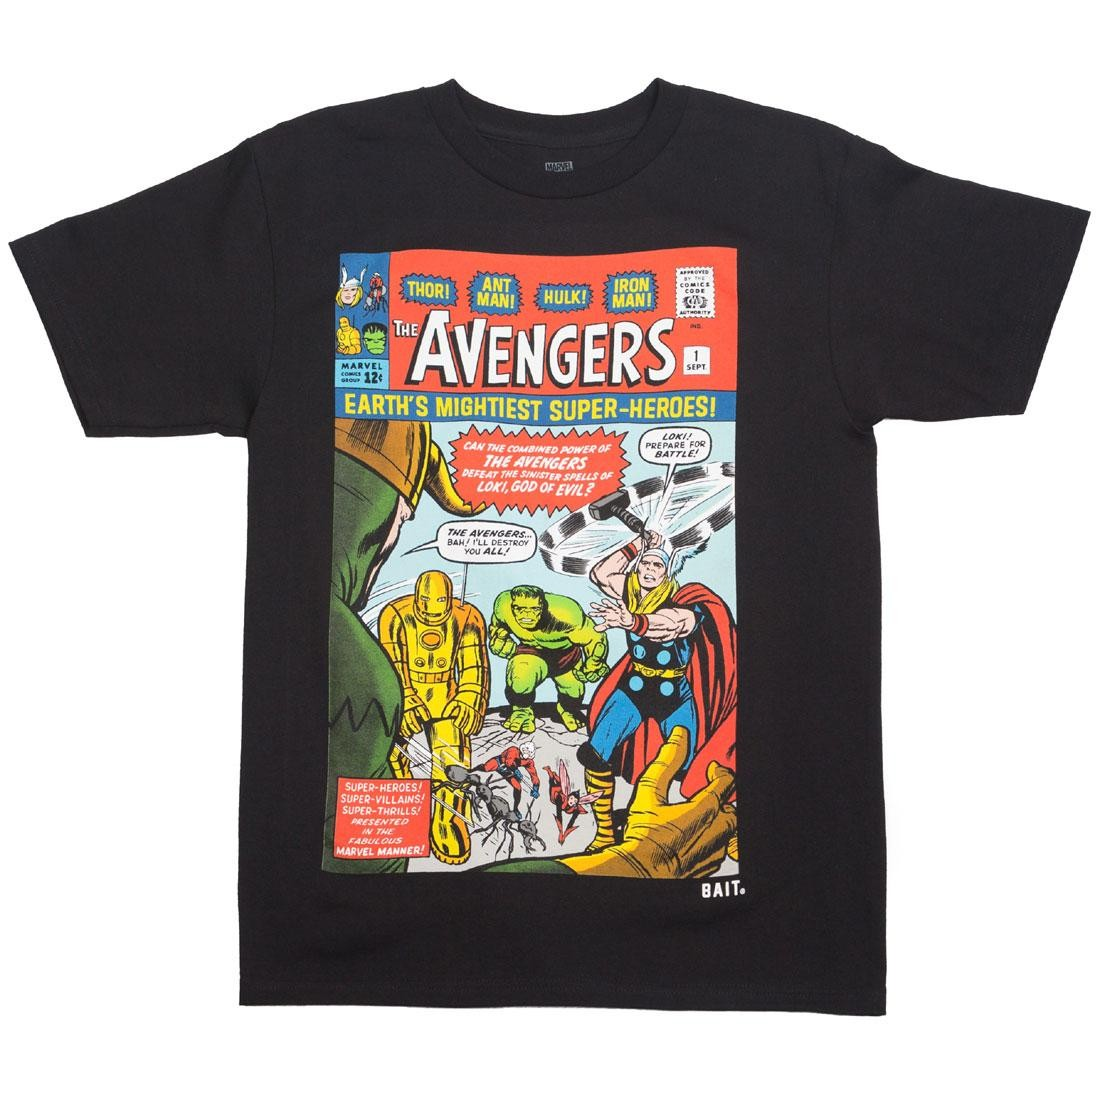 BAIT x Marvel Men Avengers - Earth's Mightiest Heroes Tee (black)